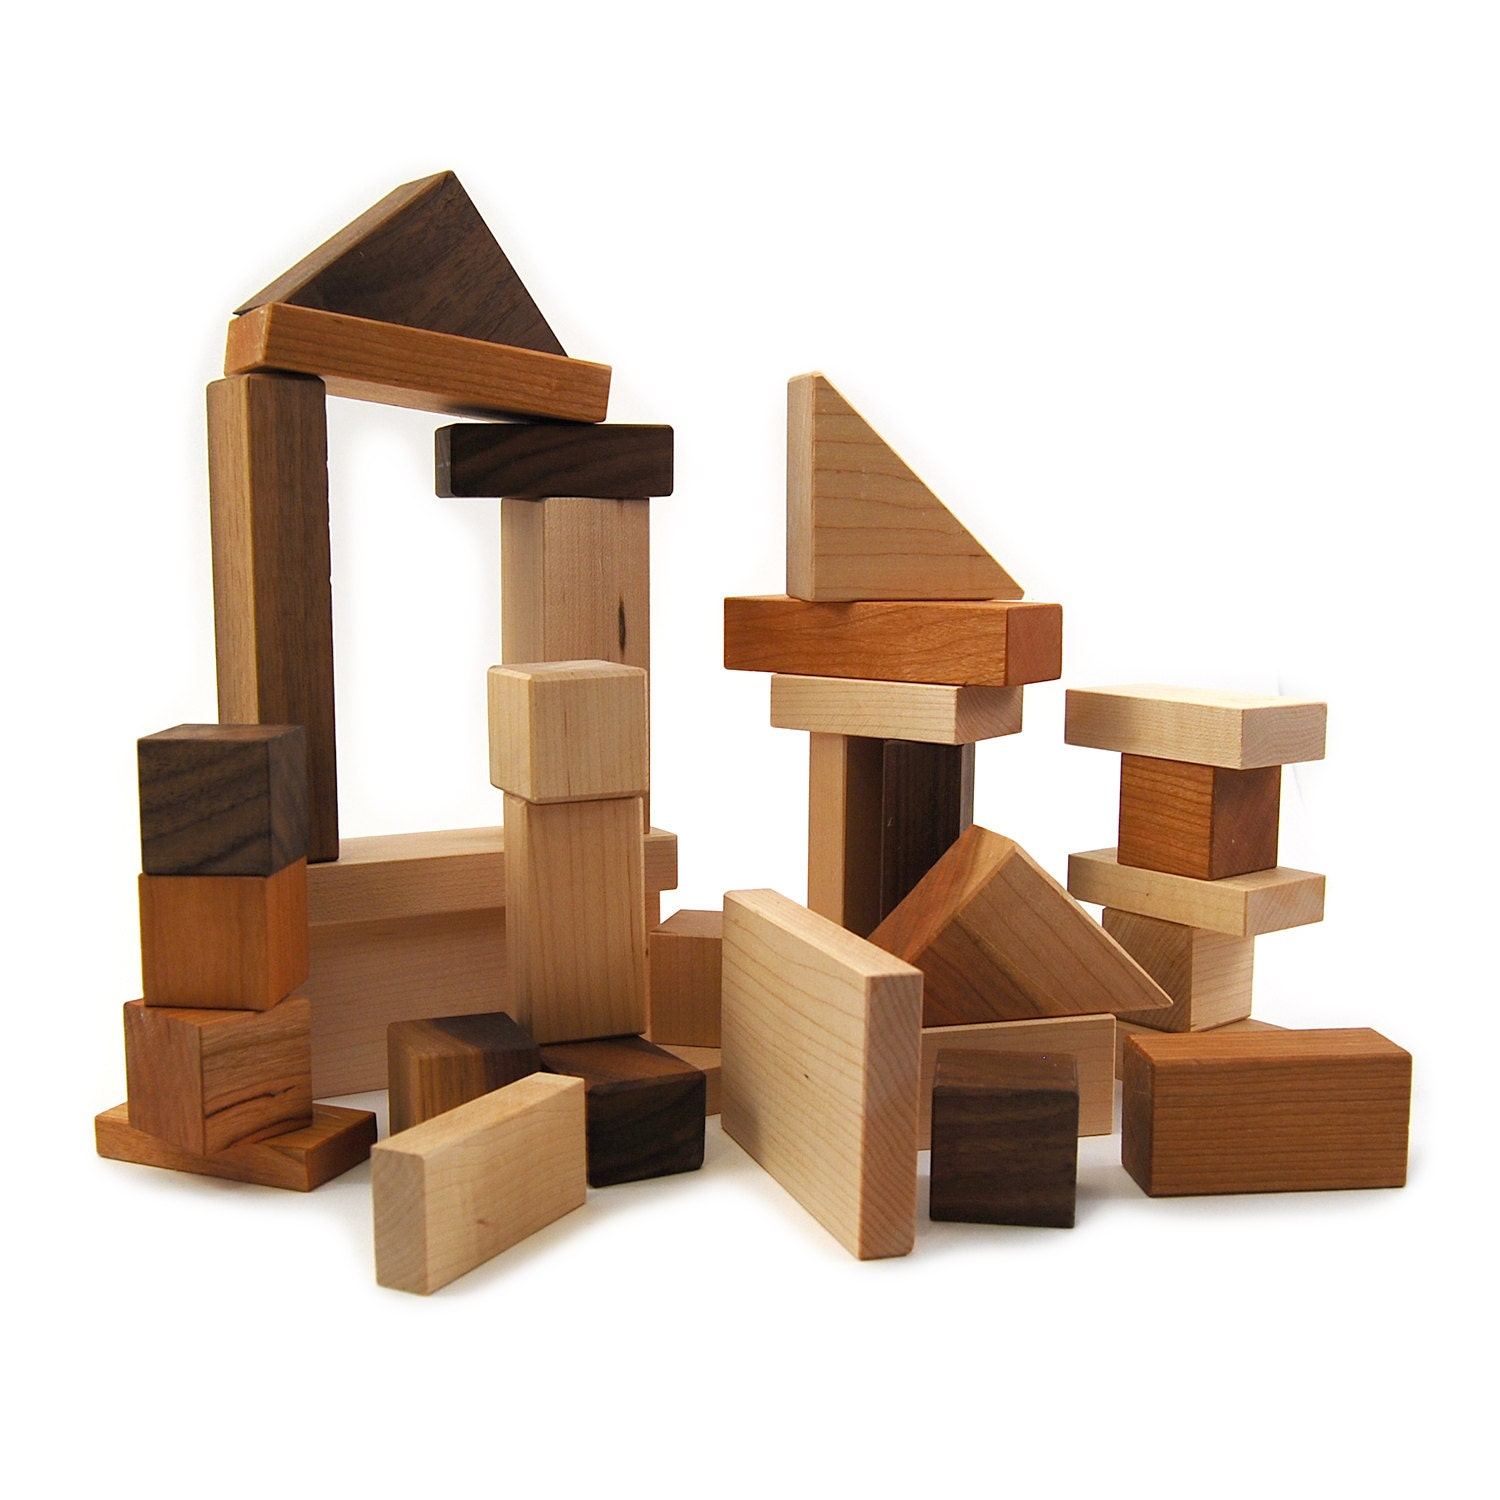 Best Wooden Blocks for toddlers Pictures